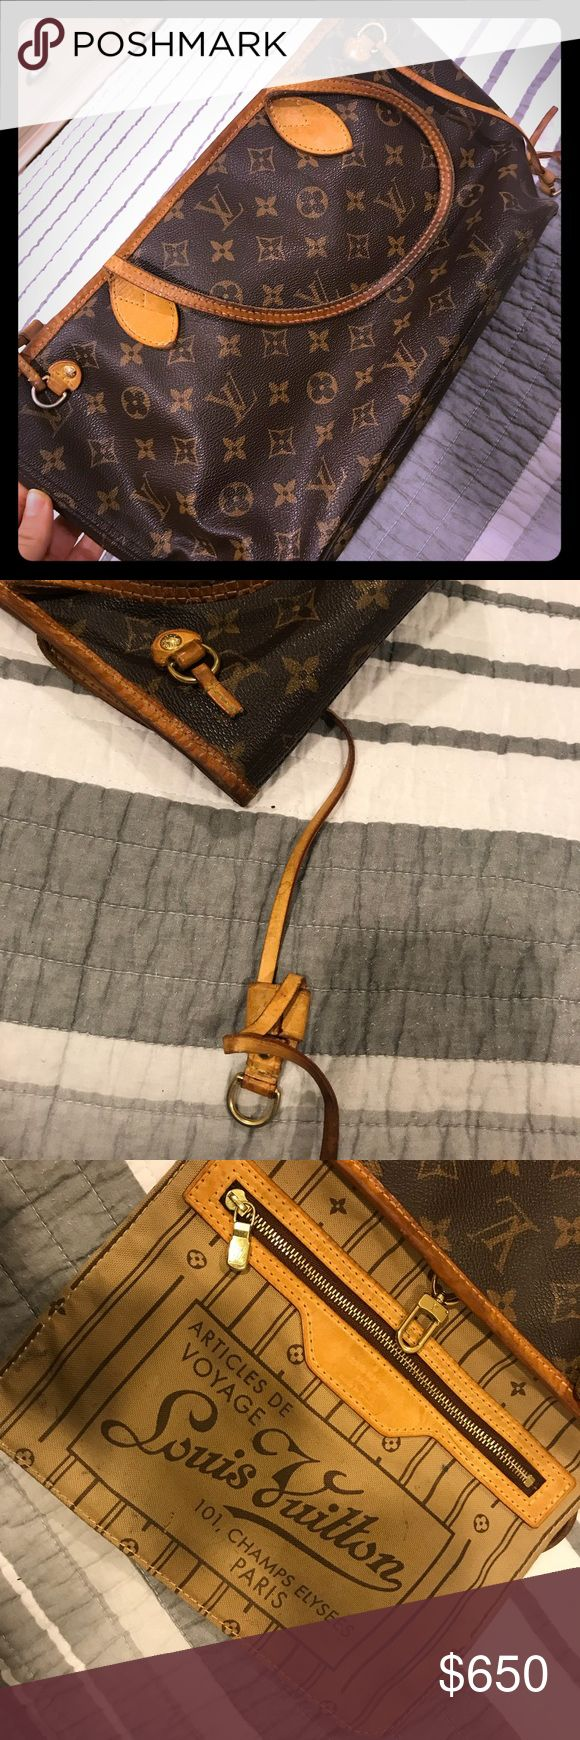 LV NEVERFULL PM Authentic Bag it's use 100% authentic i have the paperwork to proof it , i just recently took it to Neiman Marcus LV store to get clean and fix but change my mind end up buying the bigger version of the neverfull bag smh, has you can see on the pic one of the side strap it's broken and it does needs some cleaning which you can bring the strap and get it clean at the lv store Size: W28 x H23 x D12cm (W11.0' x H9.0' x D4.7 Louis Vuitton Bags Shoulder Bags